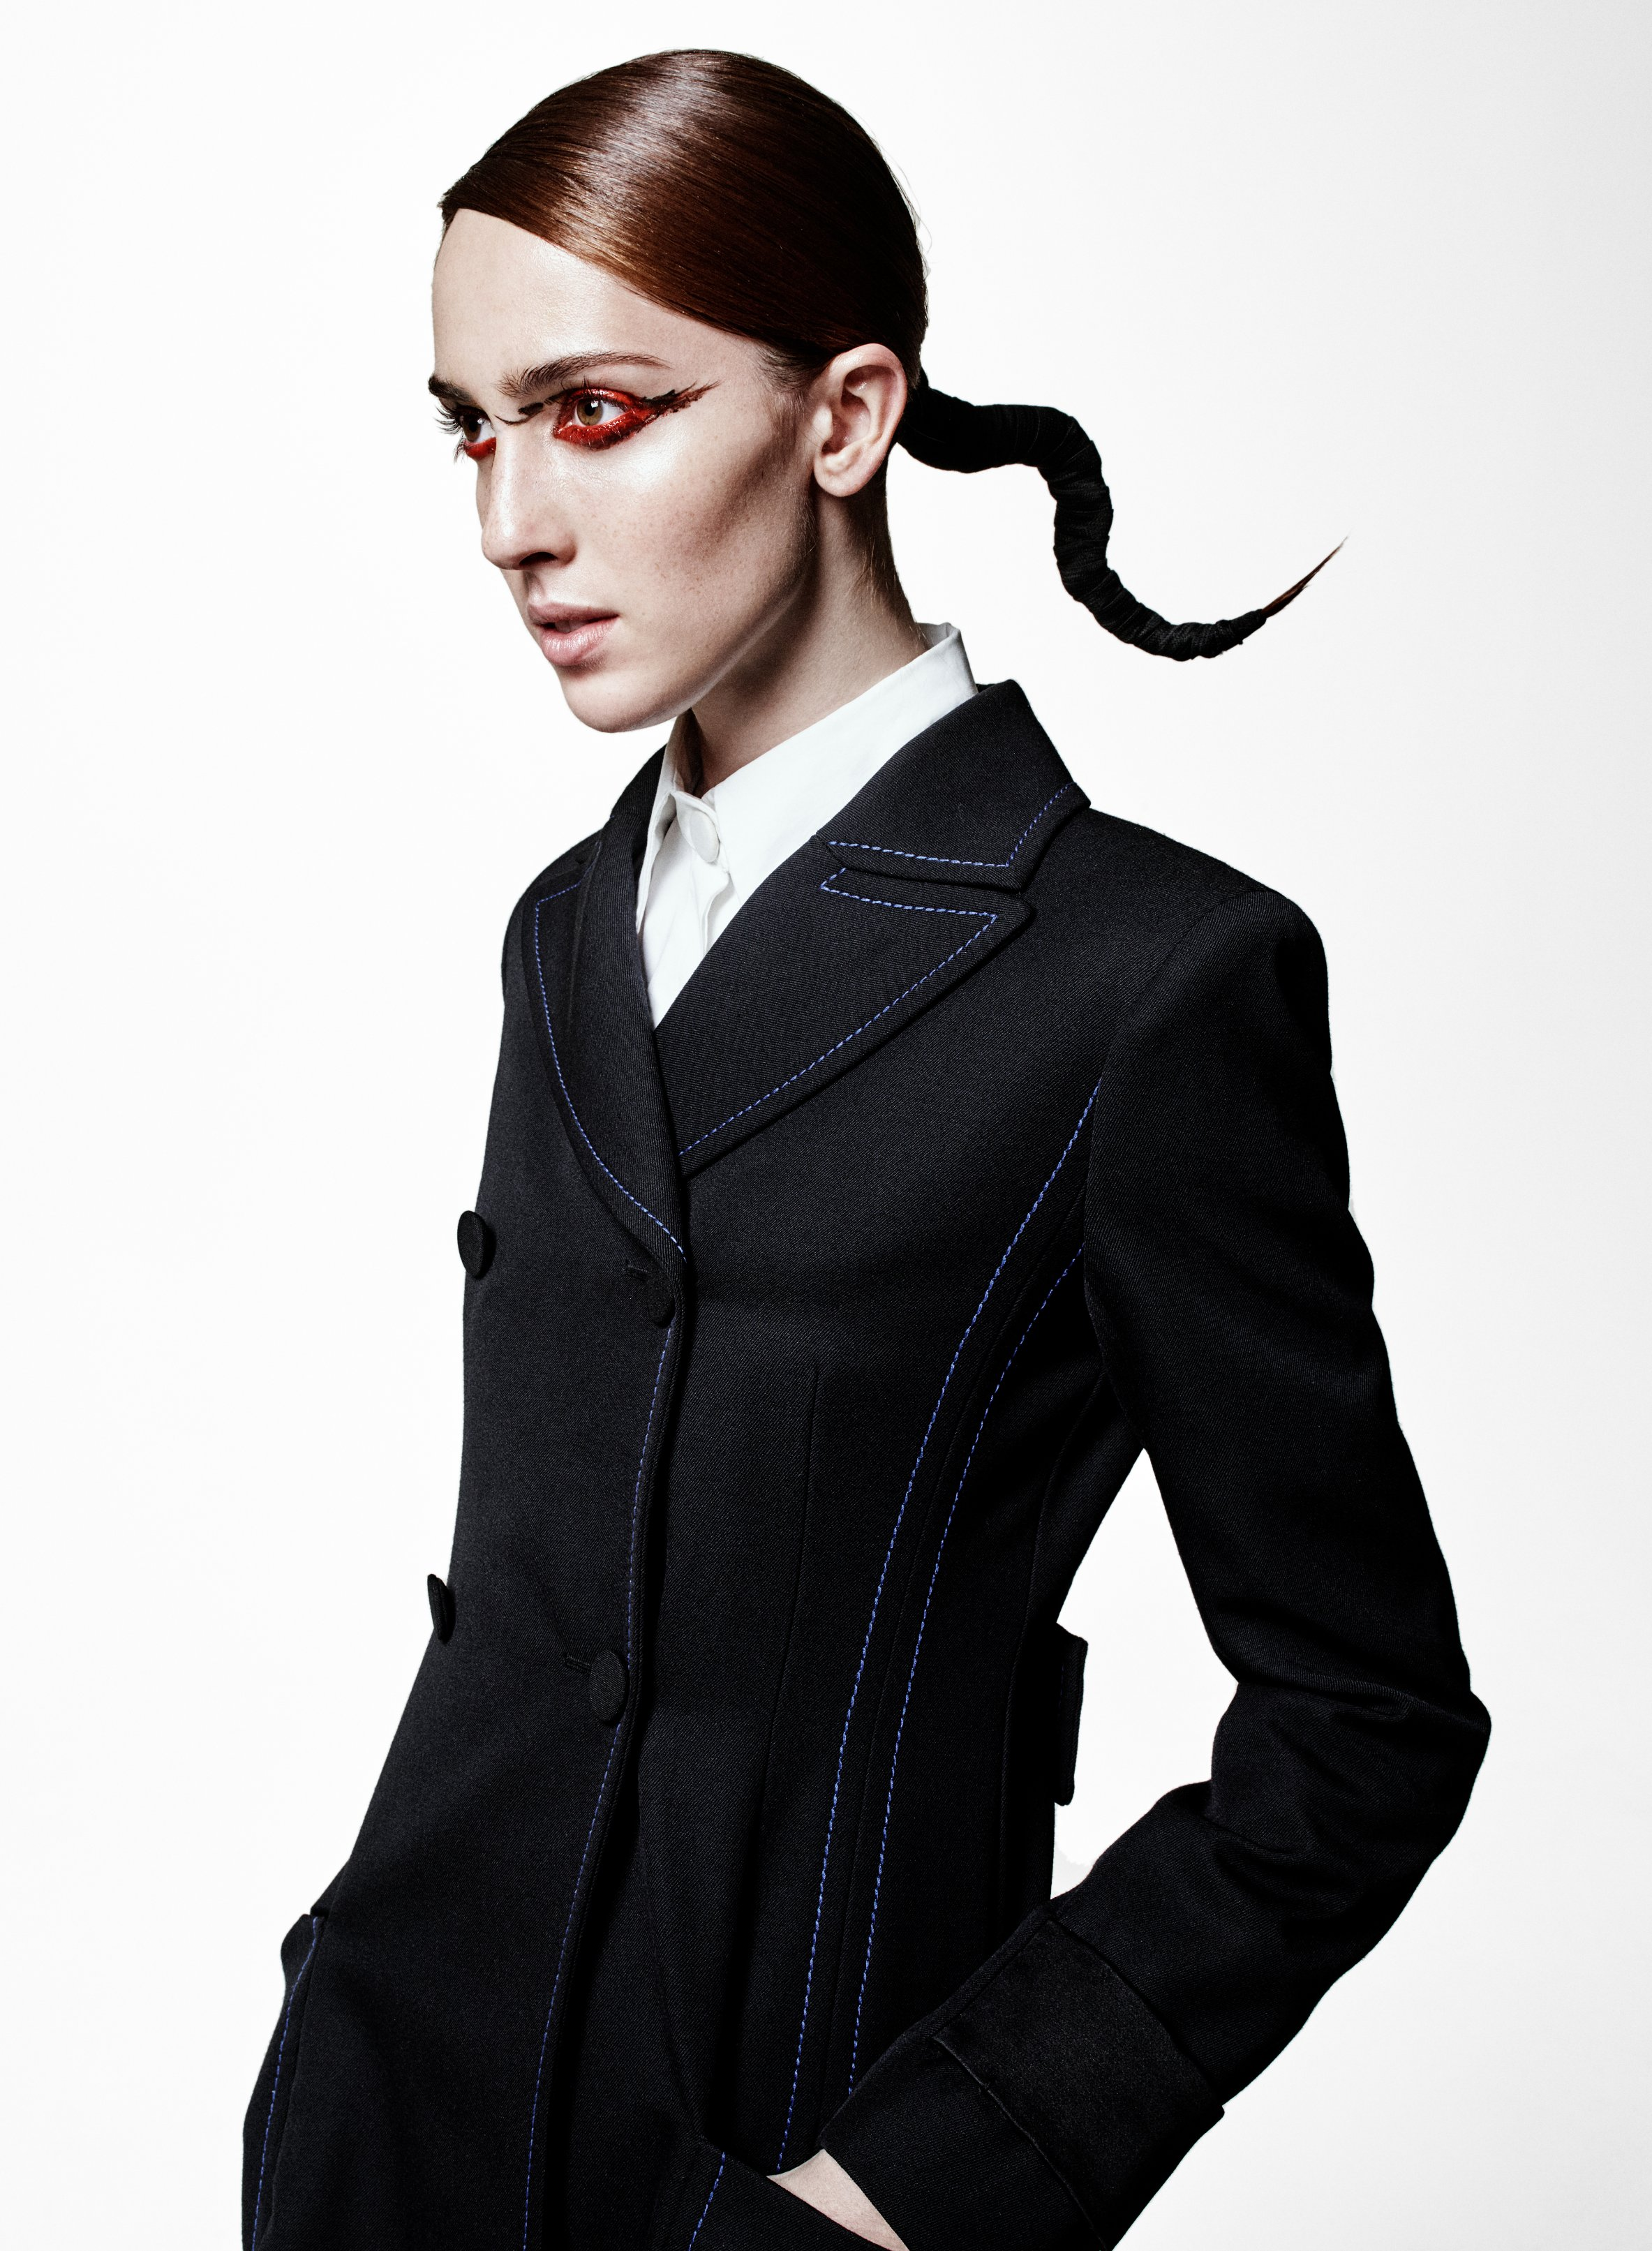 Model Teddy Quinlivan Comes Out As Transgender Cnn Style